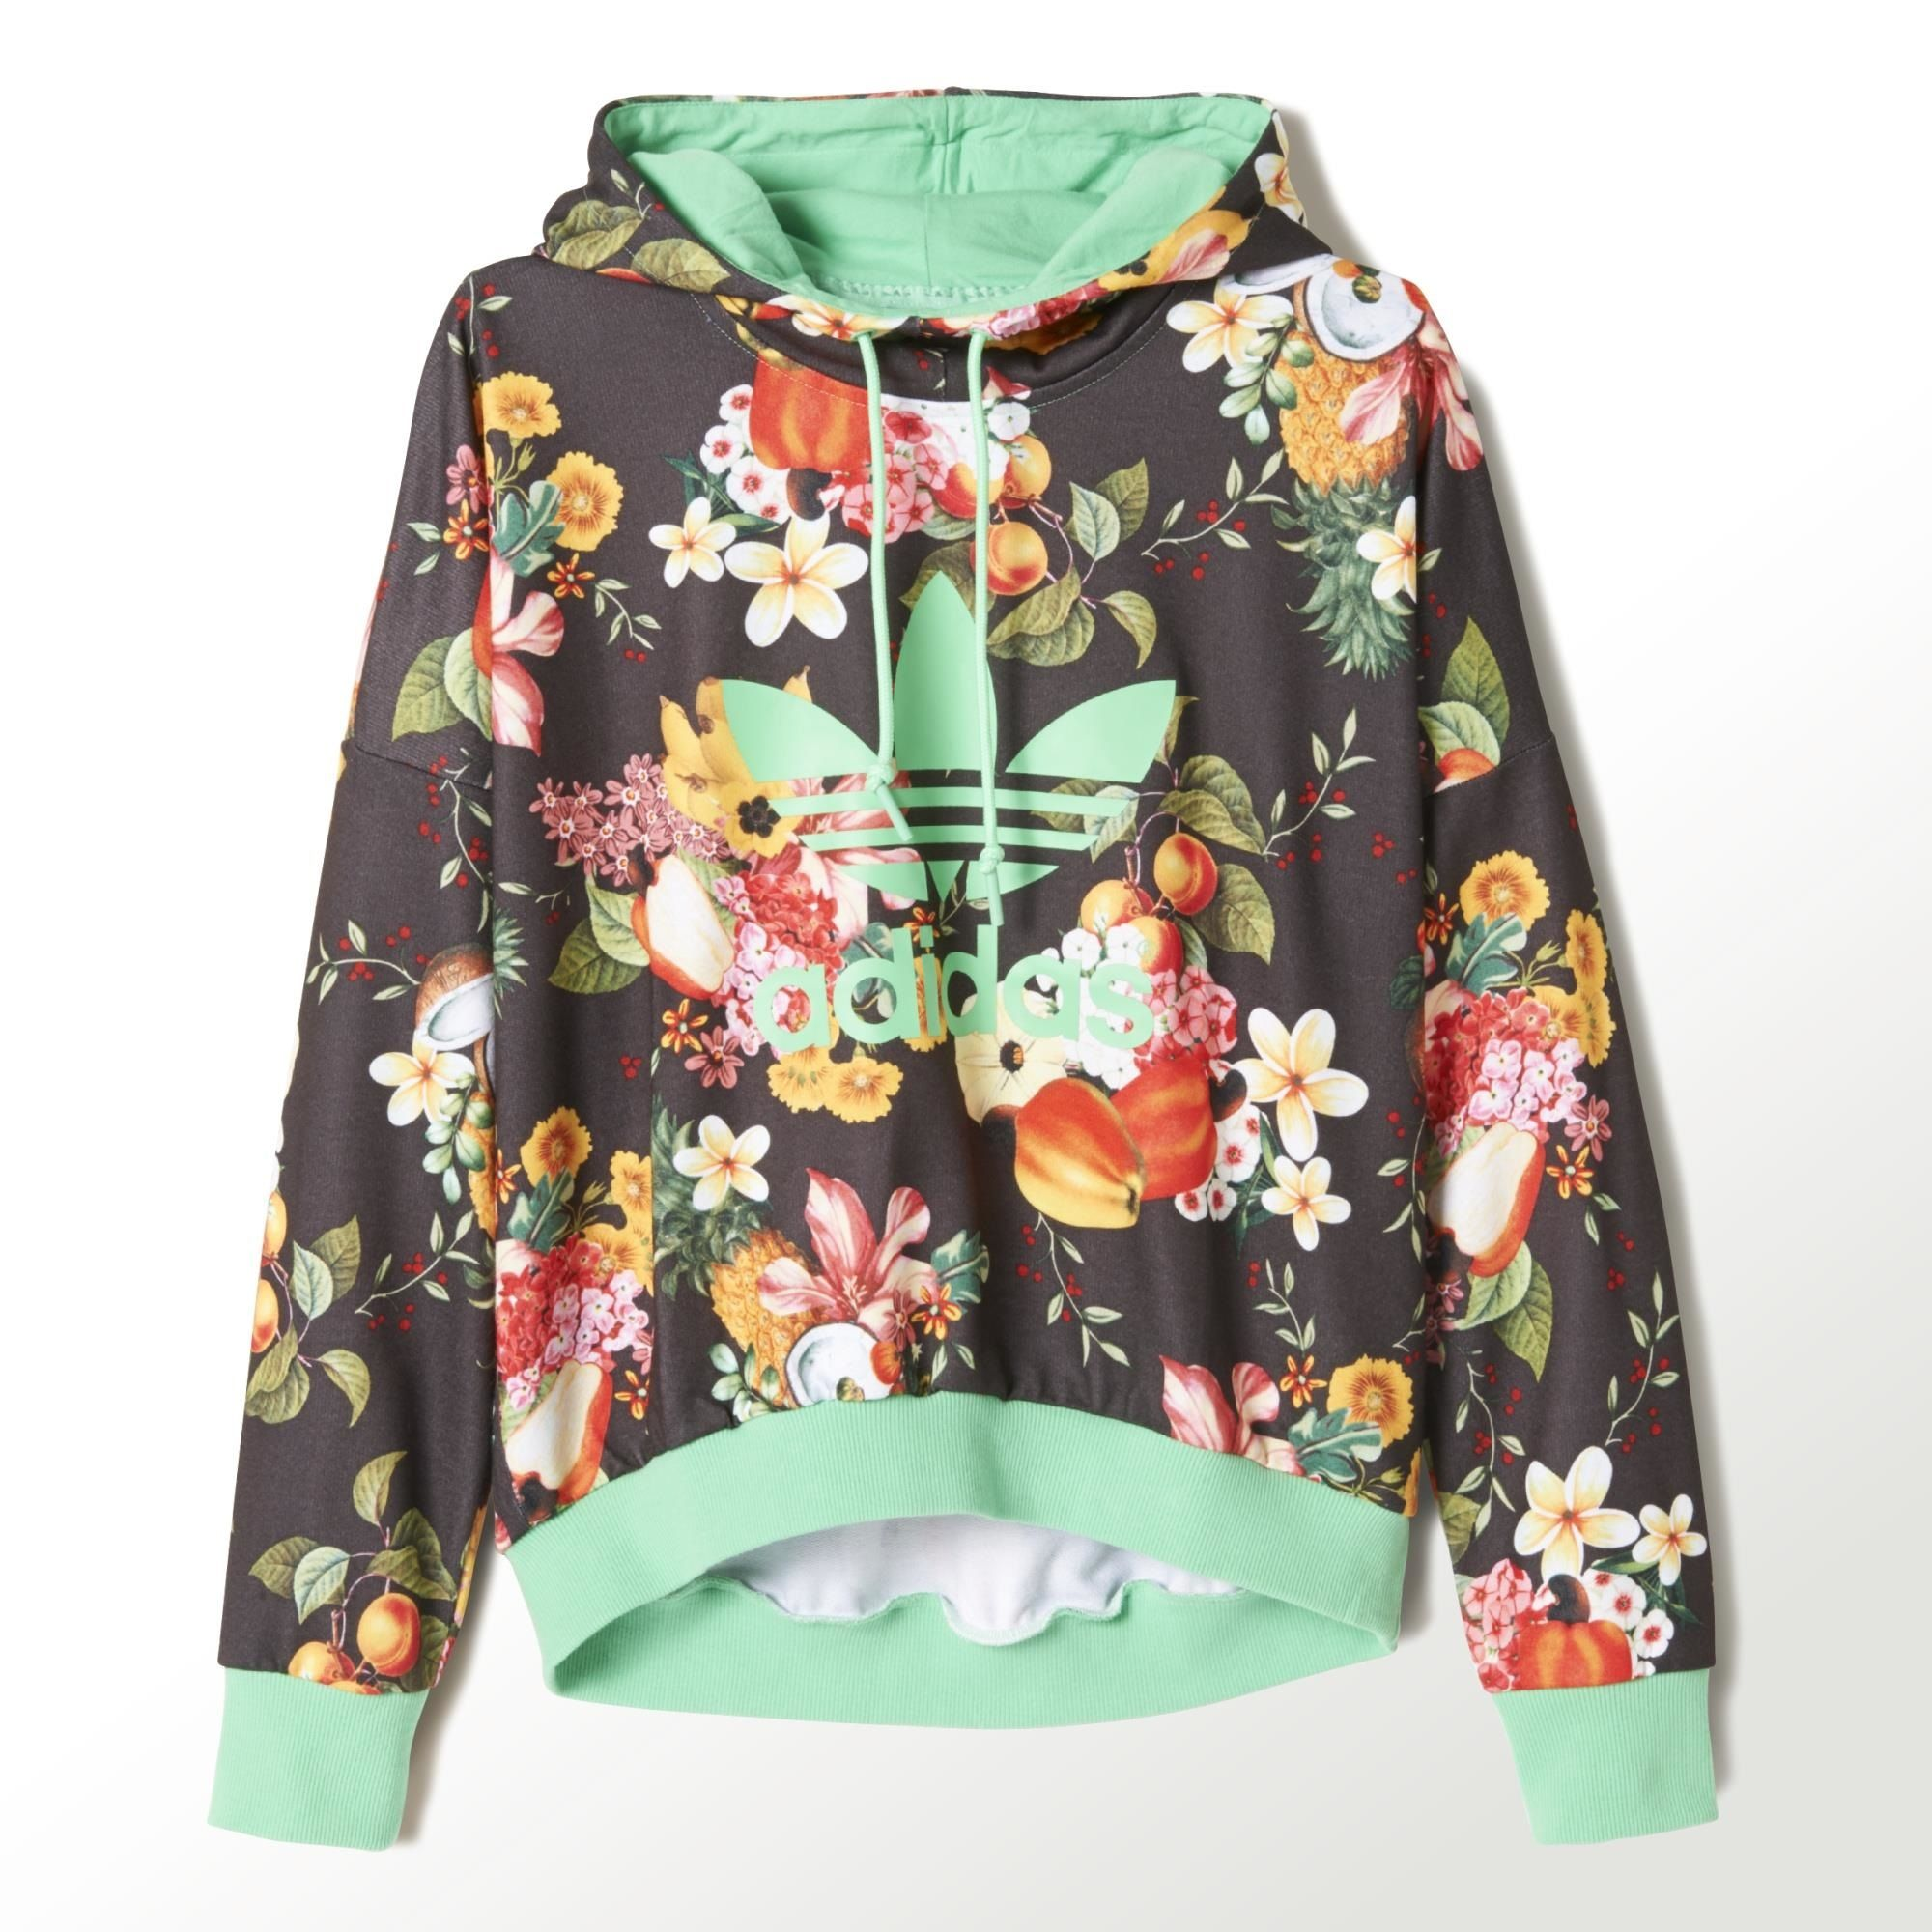 b6ad6b9d7499 This women s hoodie shows off a bountiful spread of fruits and ...